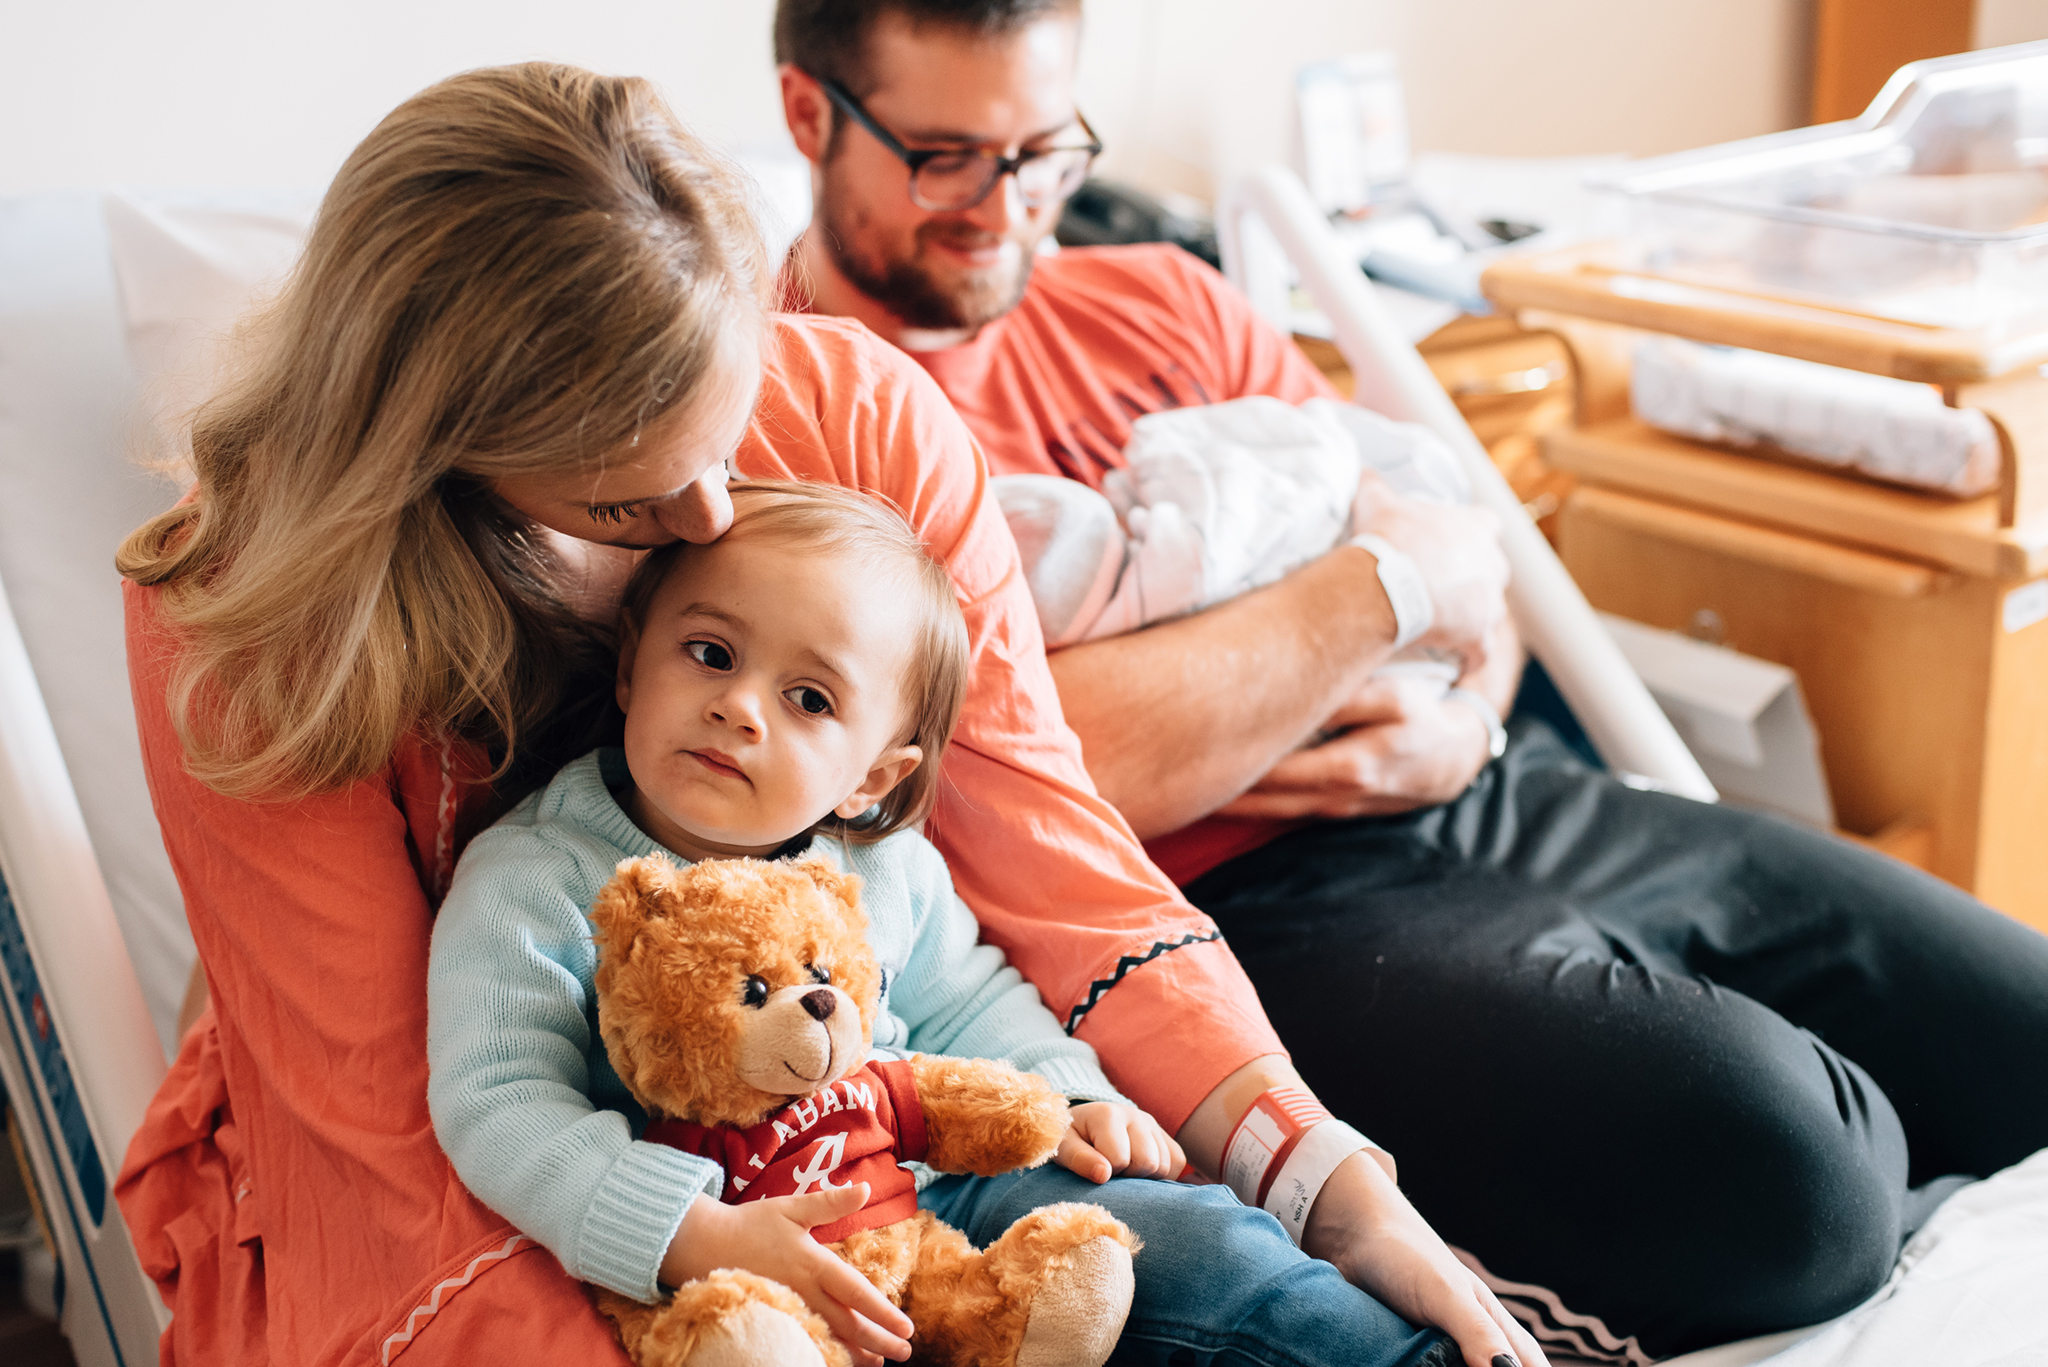 mommy-and-me-baby-photographer-Musa-Natural-Photography-lifestyle-Newborn-family-buford-johns-creek-alpharetta-lawrenceville-suwanee-gainesville-norcross-duluth-roswell-cumming-lithonia-in-home-daddy-tea-party